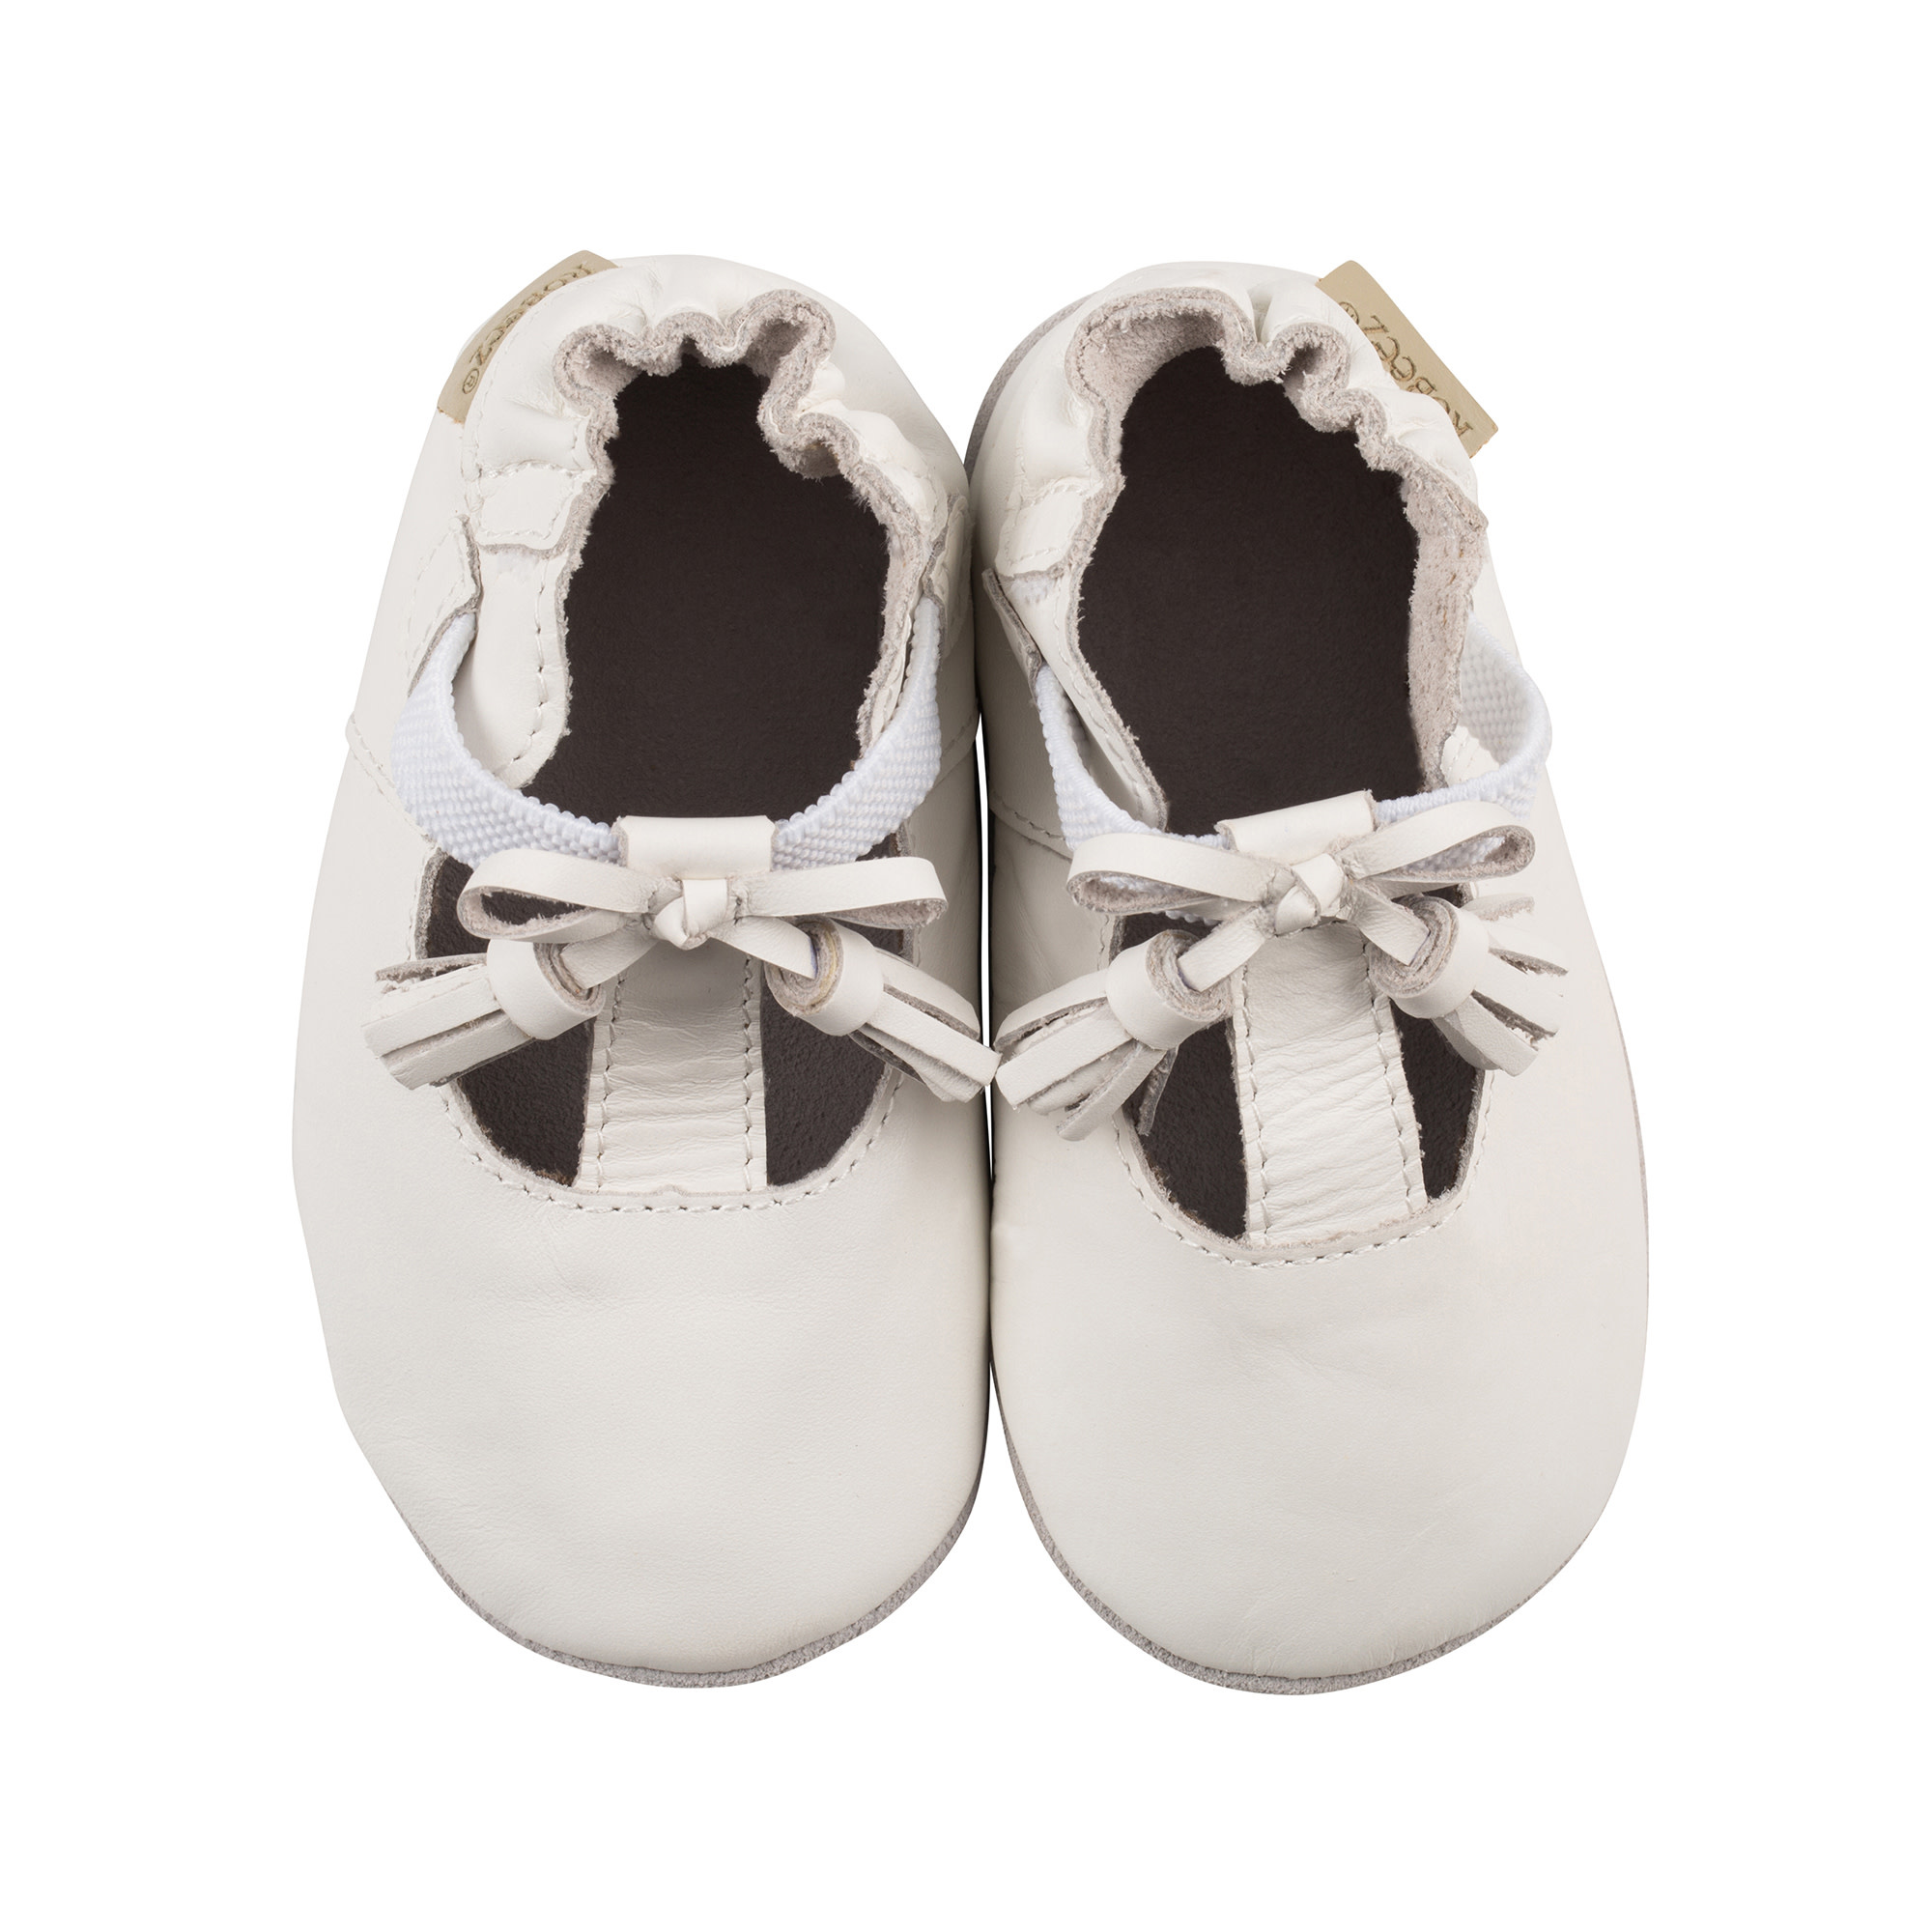 Meghan White Robeez Shoes - Soft Soles